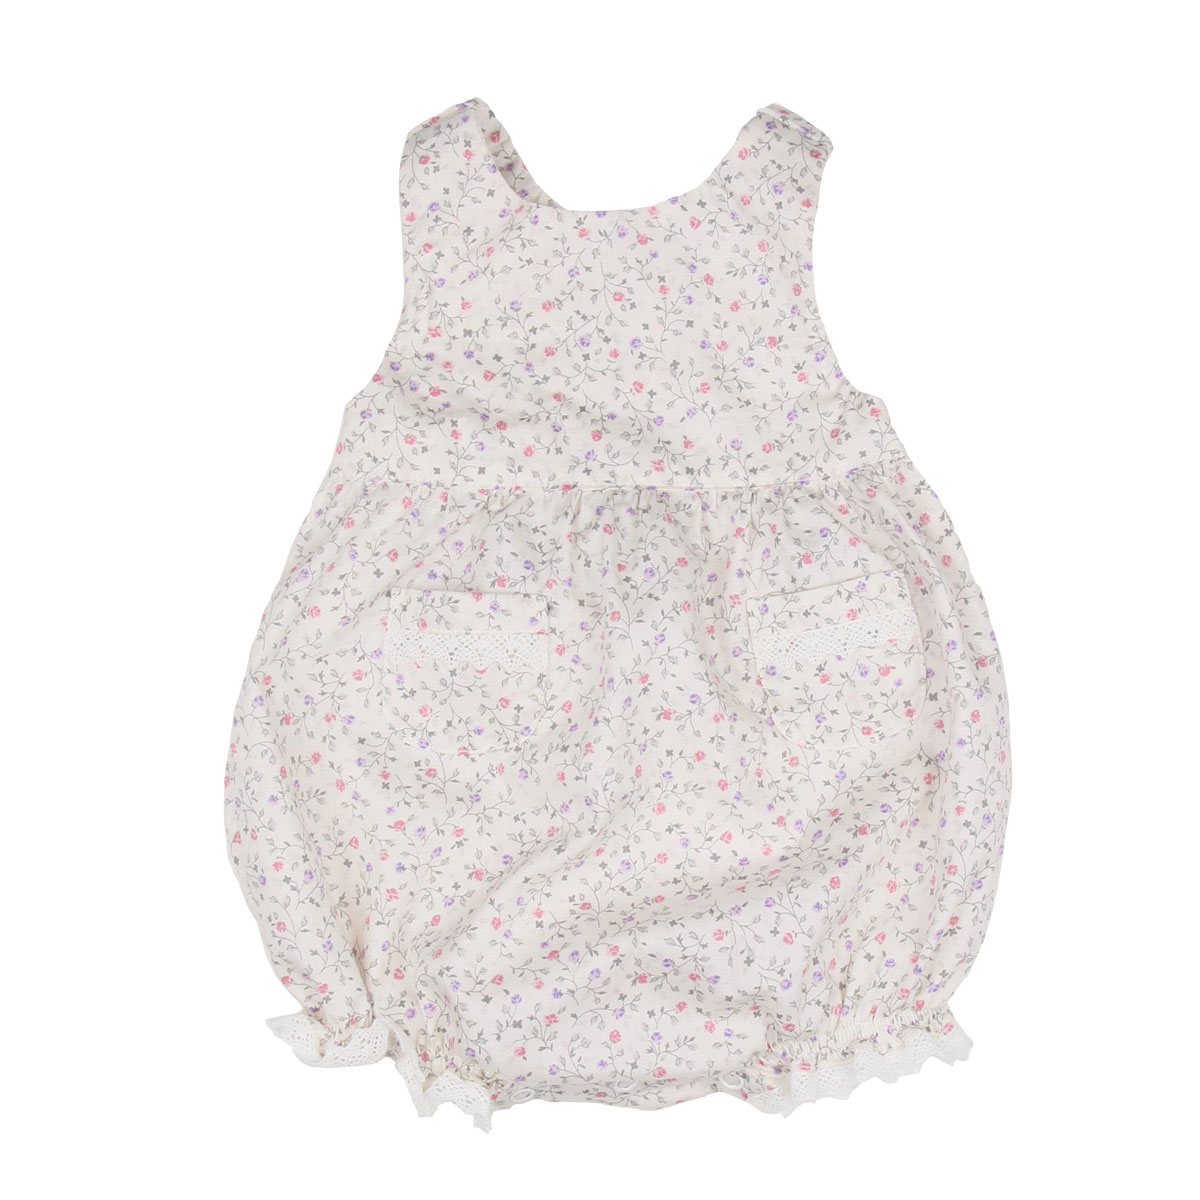 Poeme & Poesie Sleeveless overall in Ivory Floral with lace detail